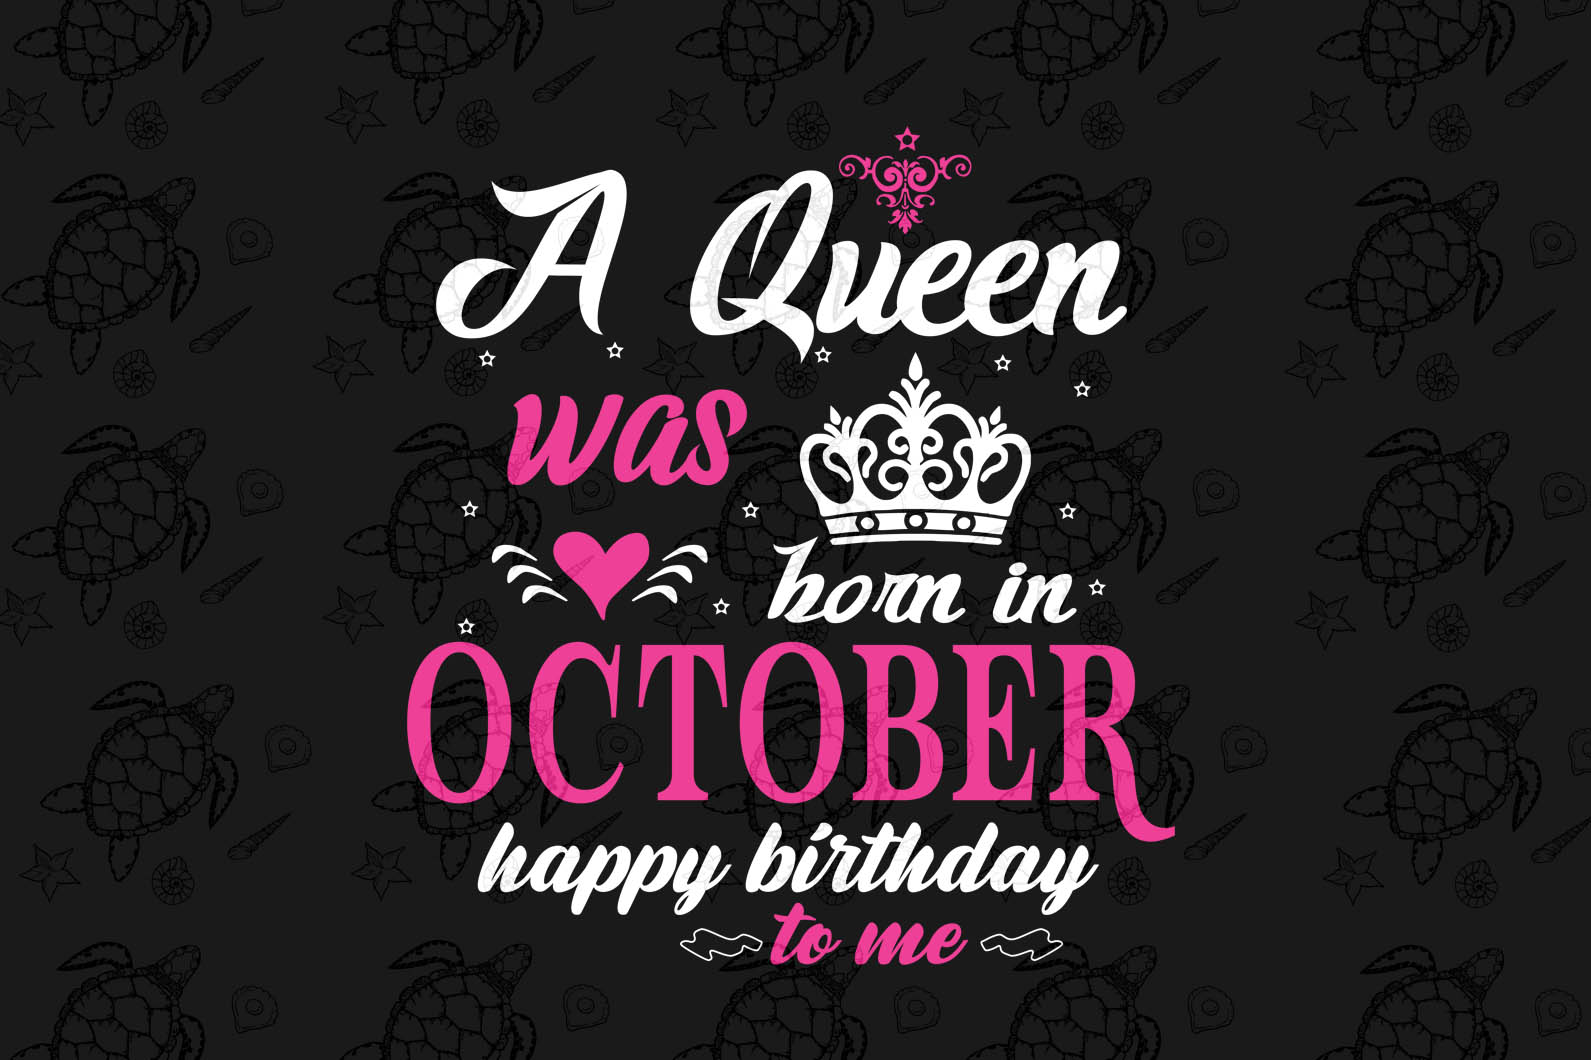 A queen was born in October, retro vintage shirt, born in October, October svg, October birthday, October birthday gift, birthday shirt, queen svg, girl gift, girl shirt, svg cut files, svg clipart, silhouette svg, cricut svg files, decal and vinyl,